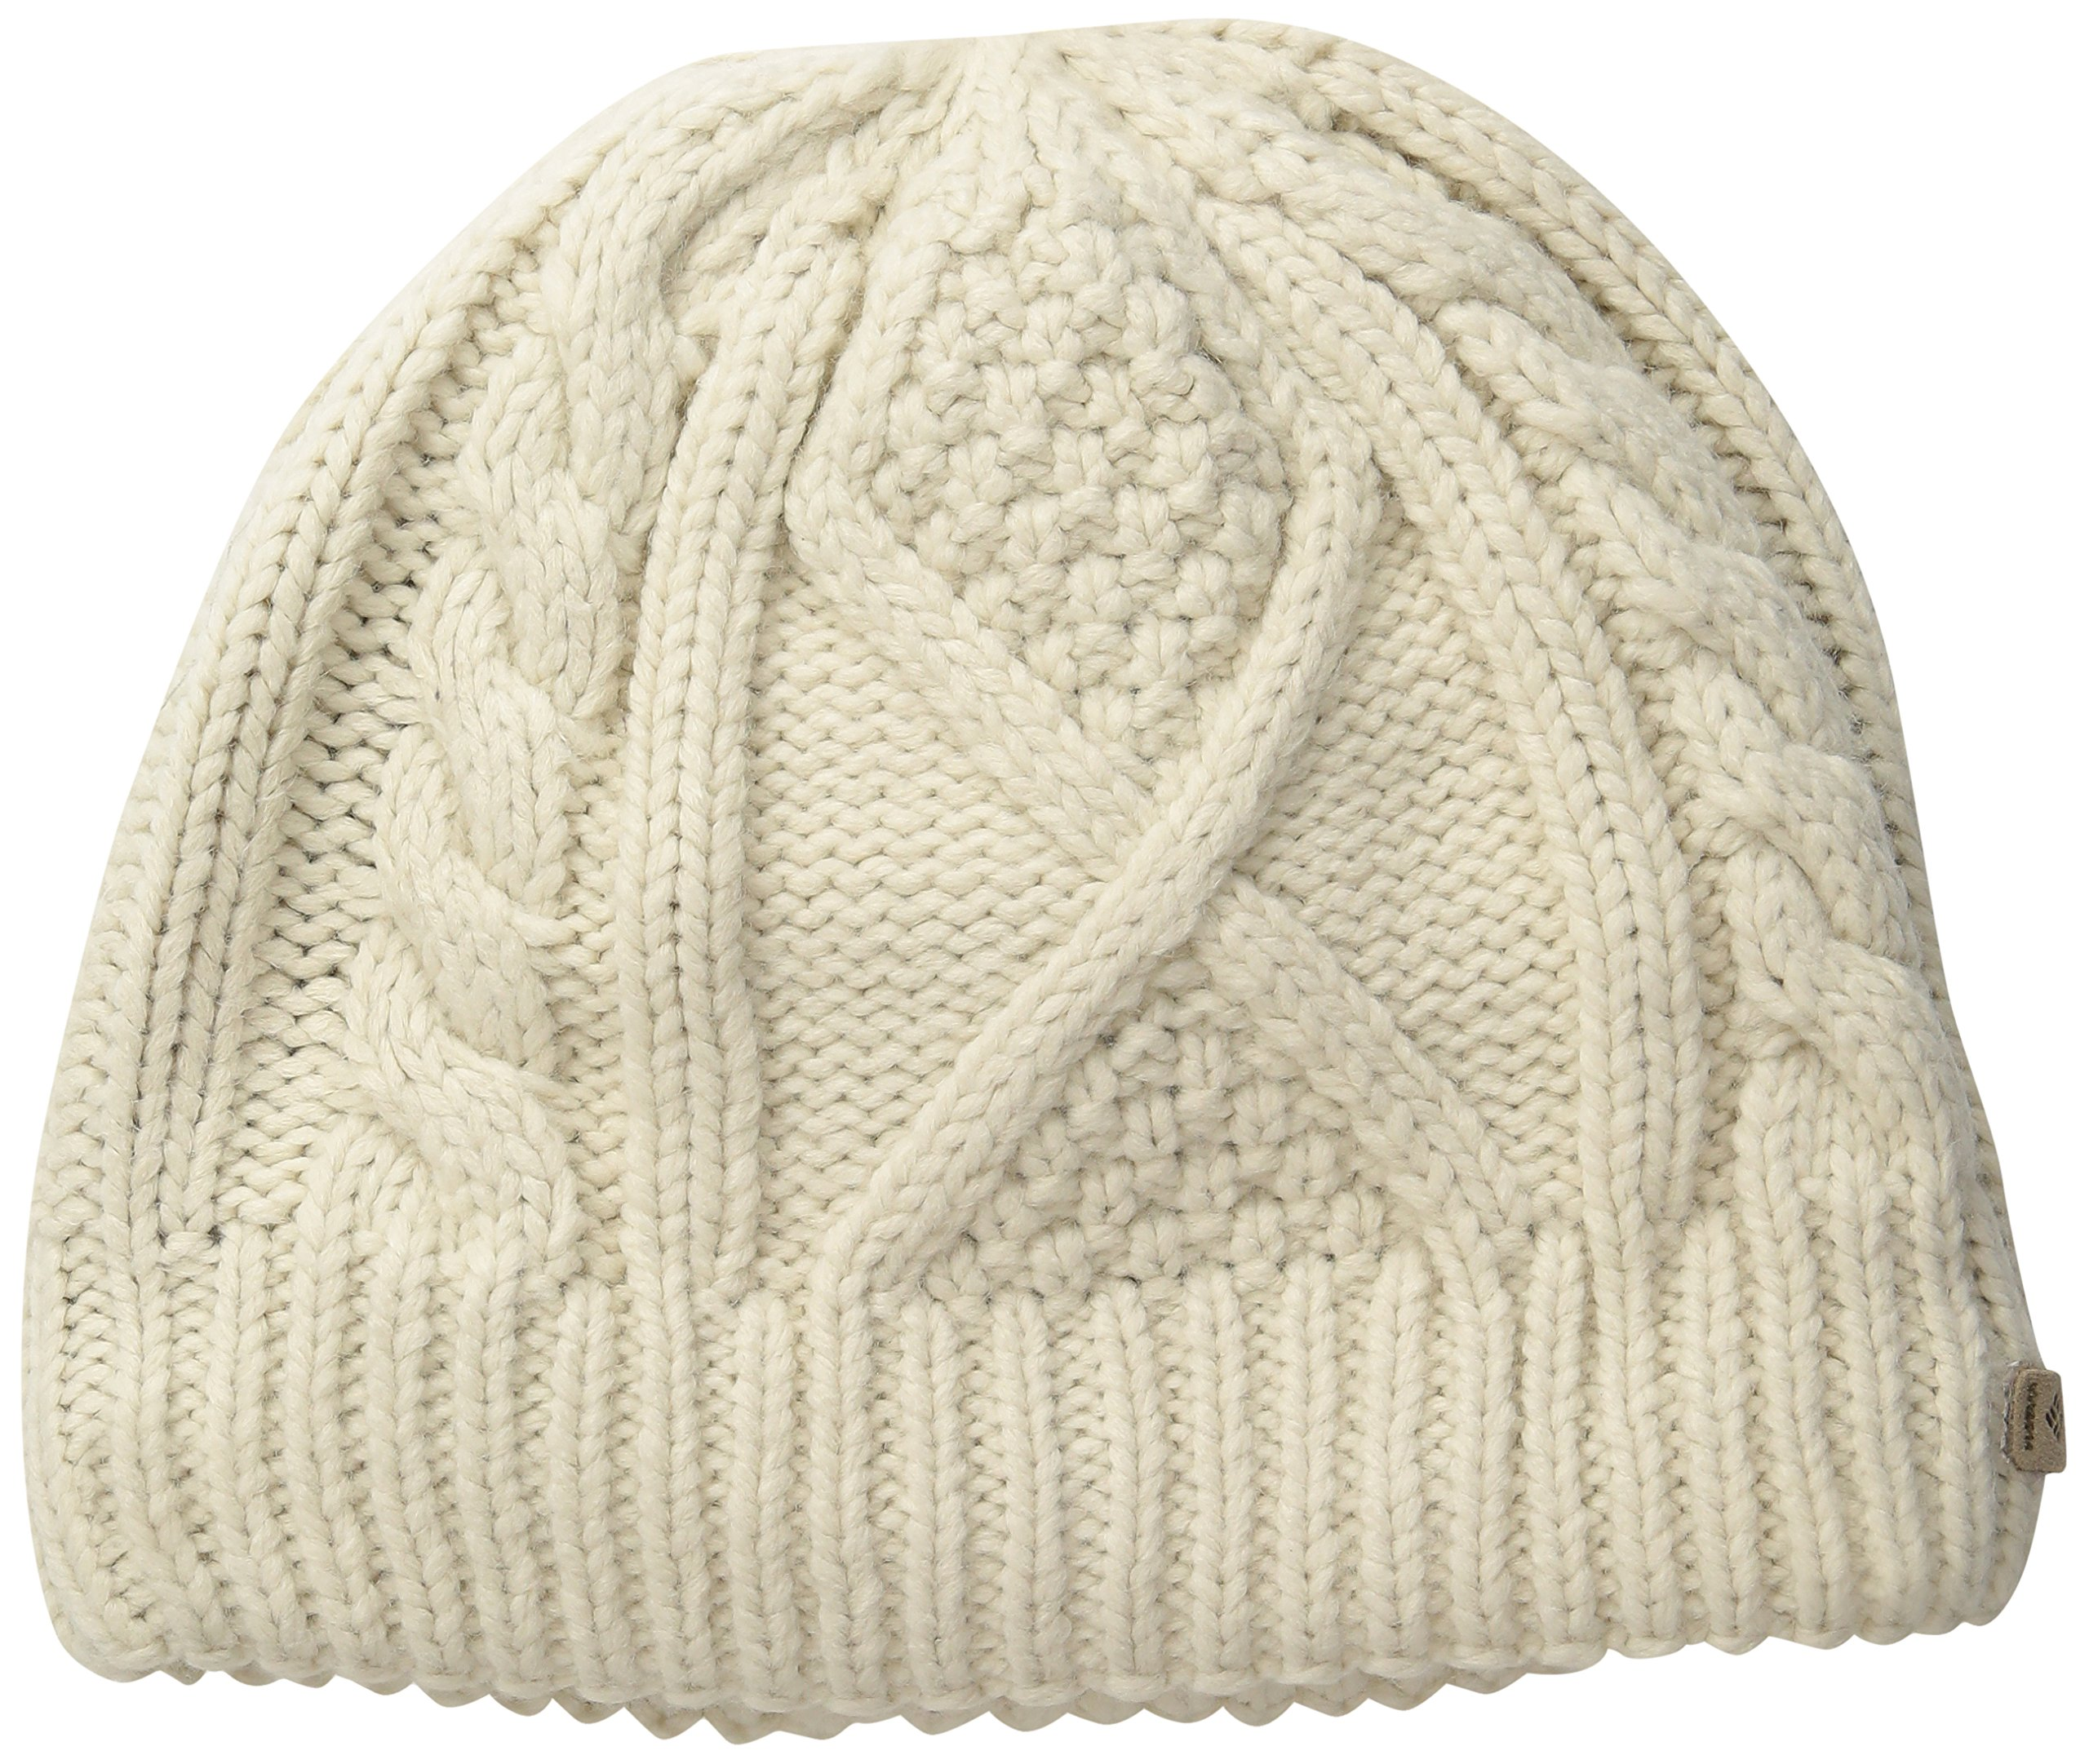 Columbia Women's Cabled Cutie Beanie, Chalk, One Size (6 1/2-7 1/2)